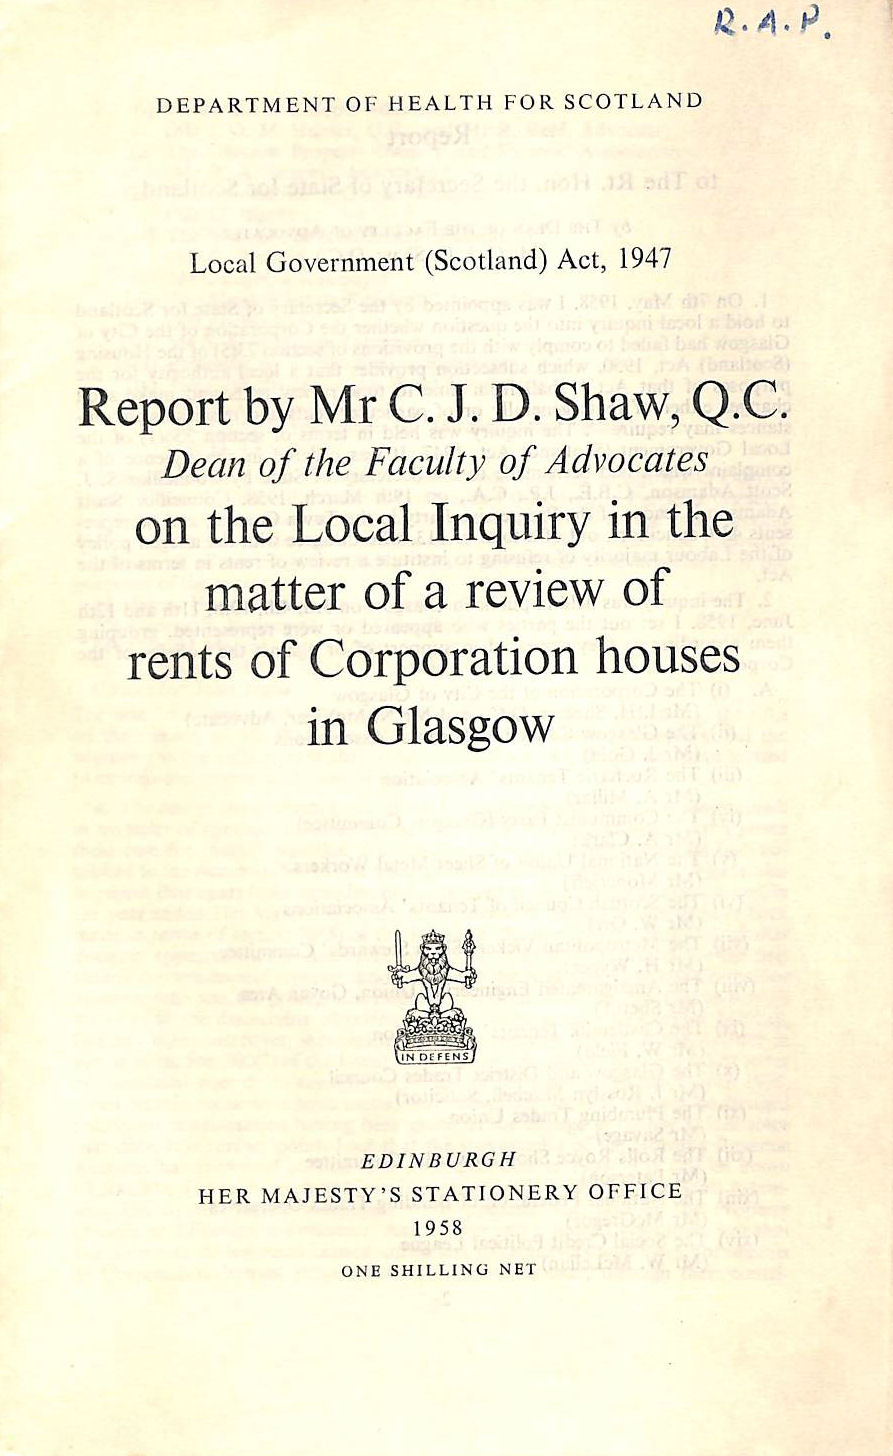 Image for Report of Mr C. J. D. Shaw, Q.C. on the Local Inquiry on the matter of a review of rents of Corporation houses in Glasgow